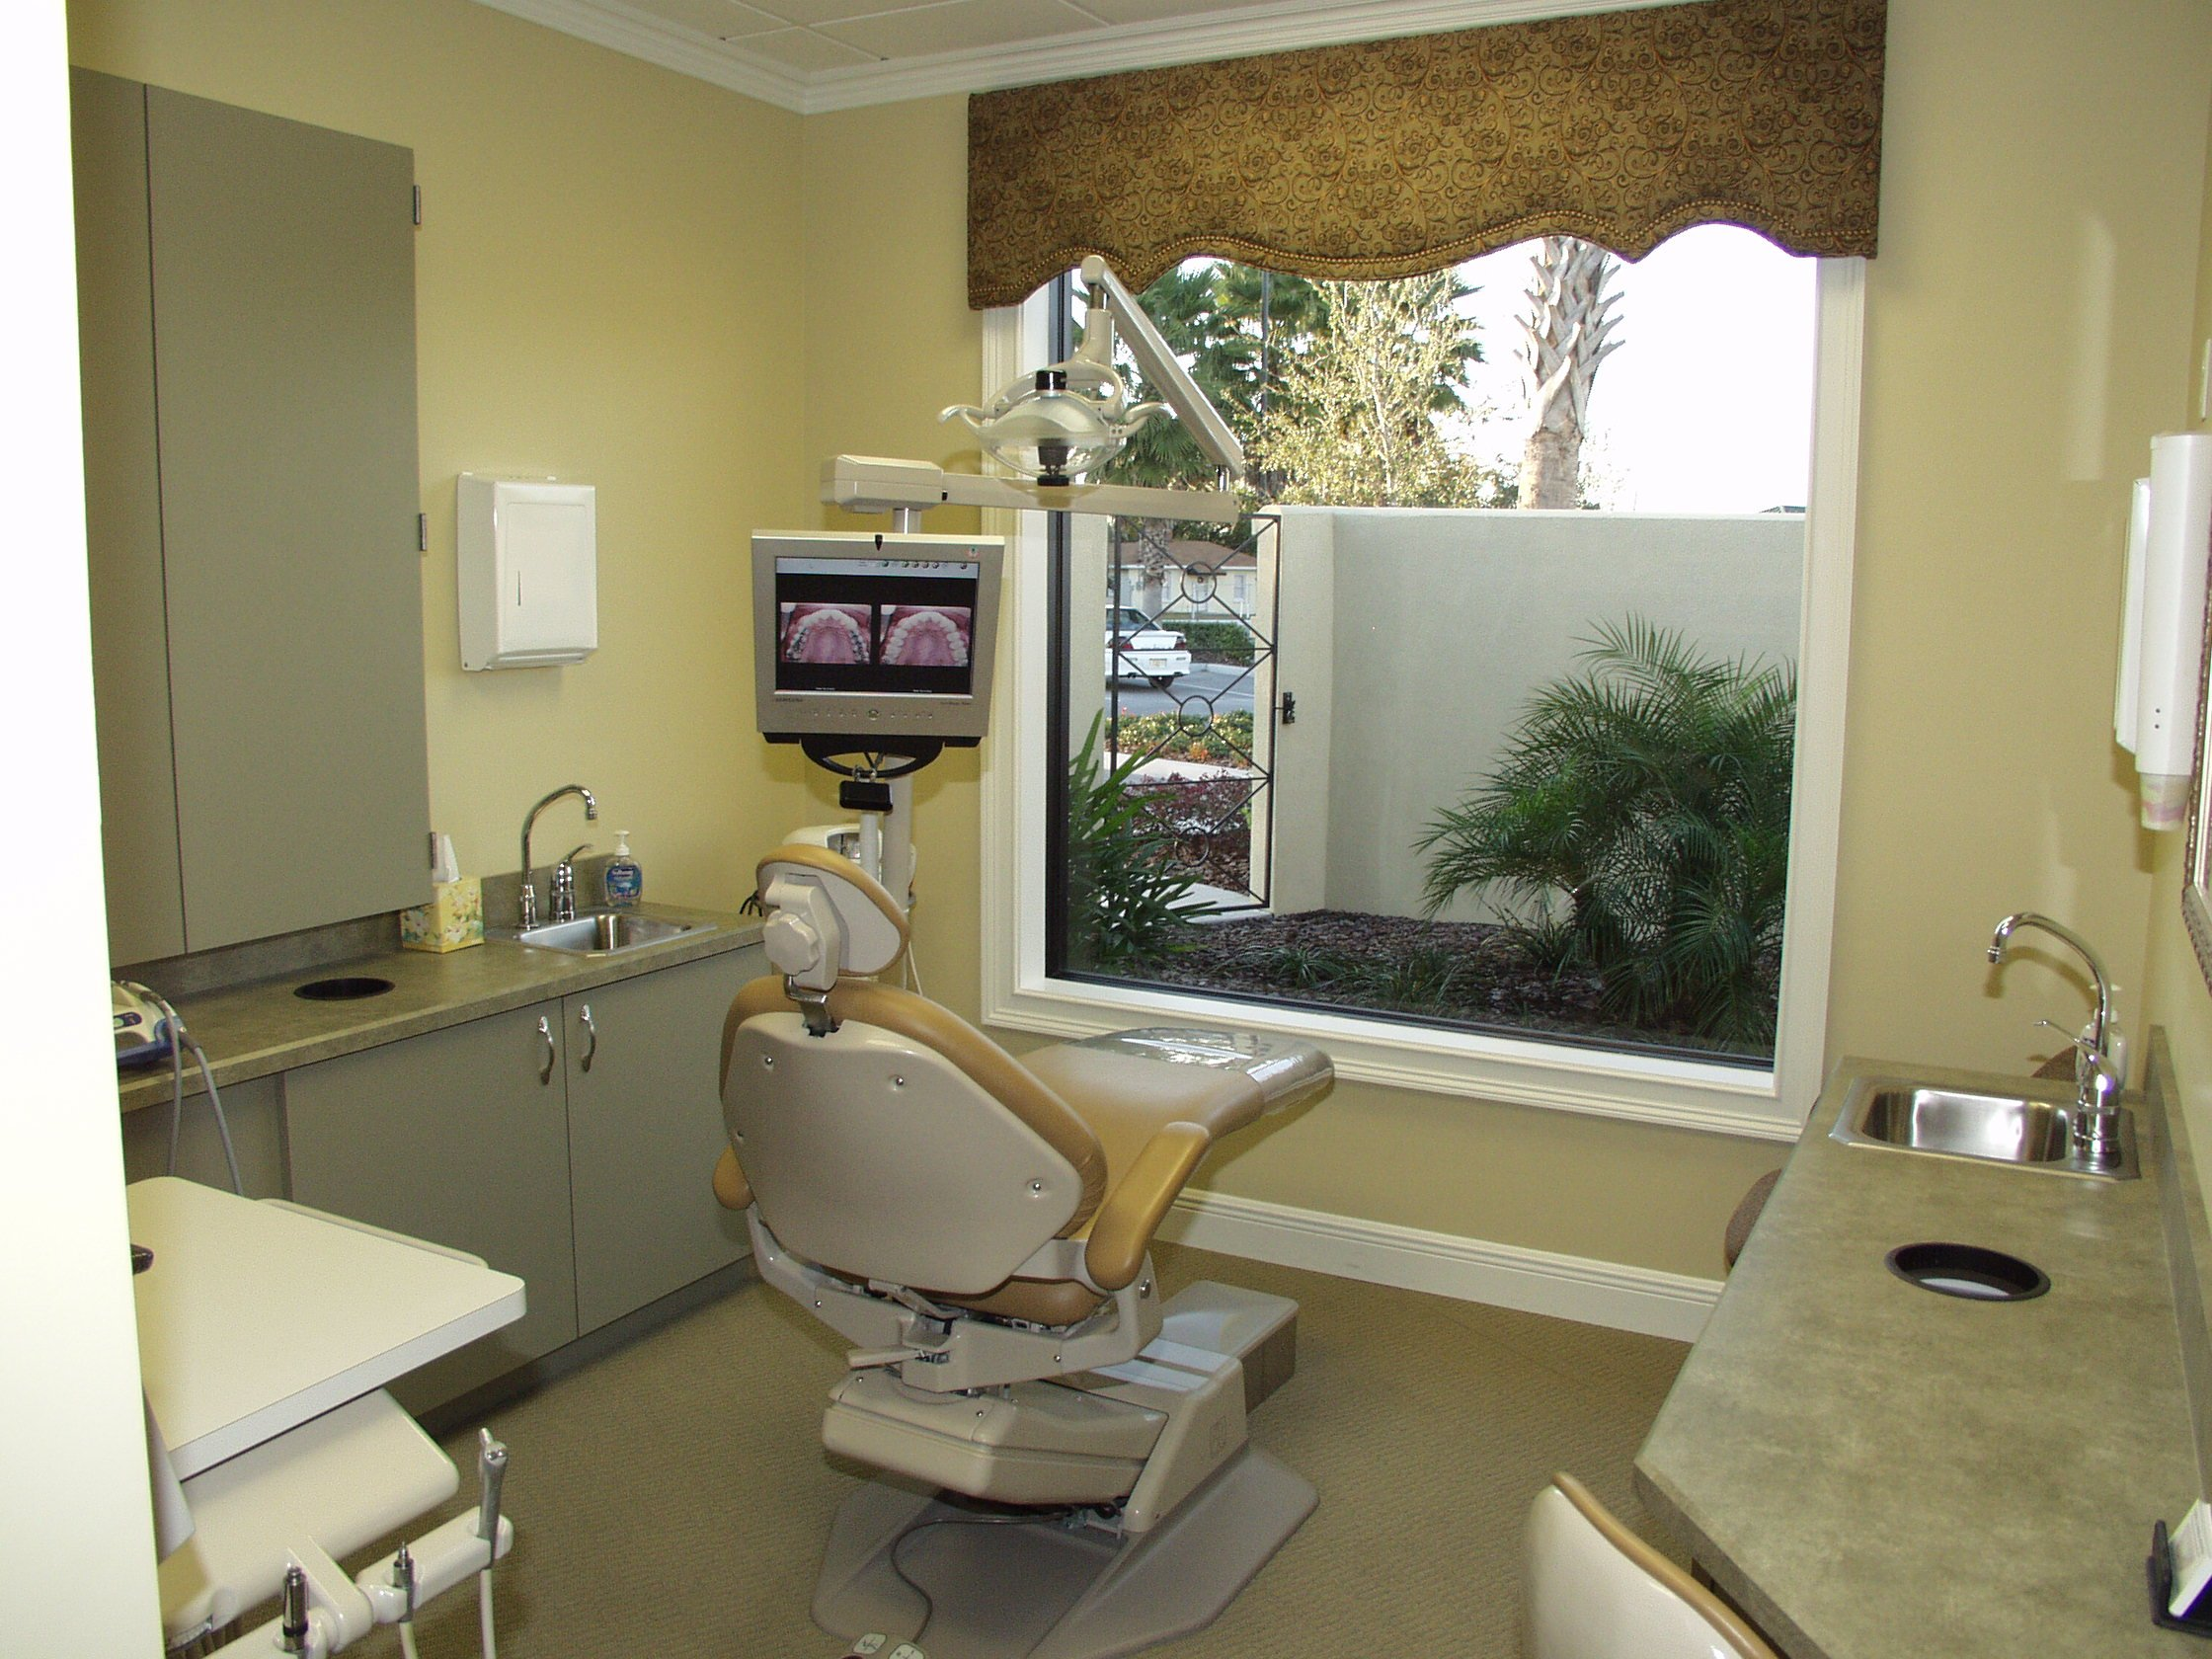 Dental office designs dentists hd wallpaper pictures top dental office 2240x1680